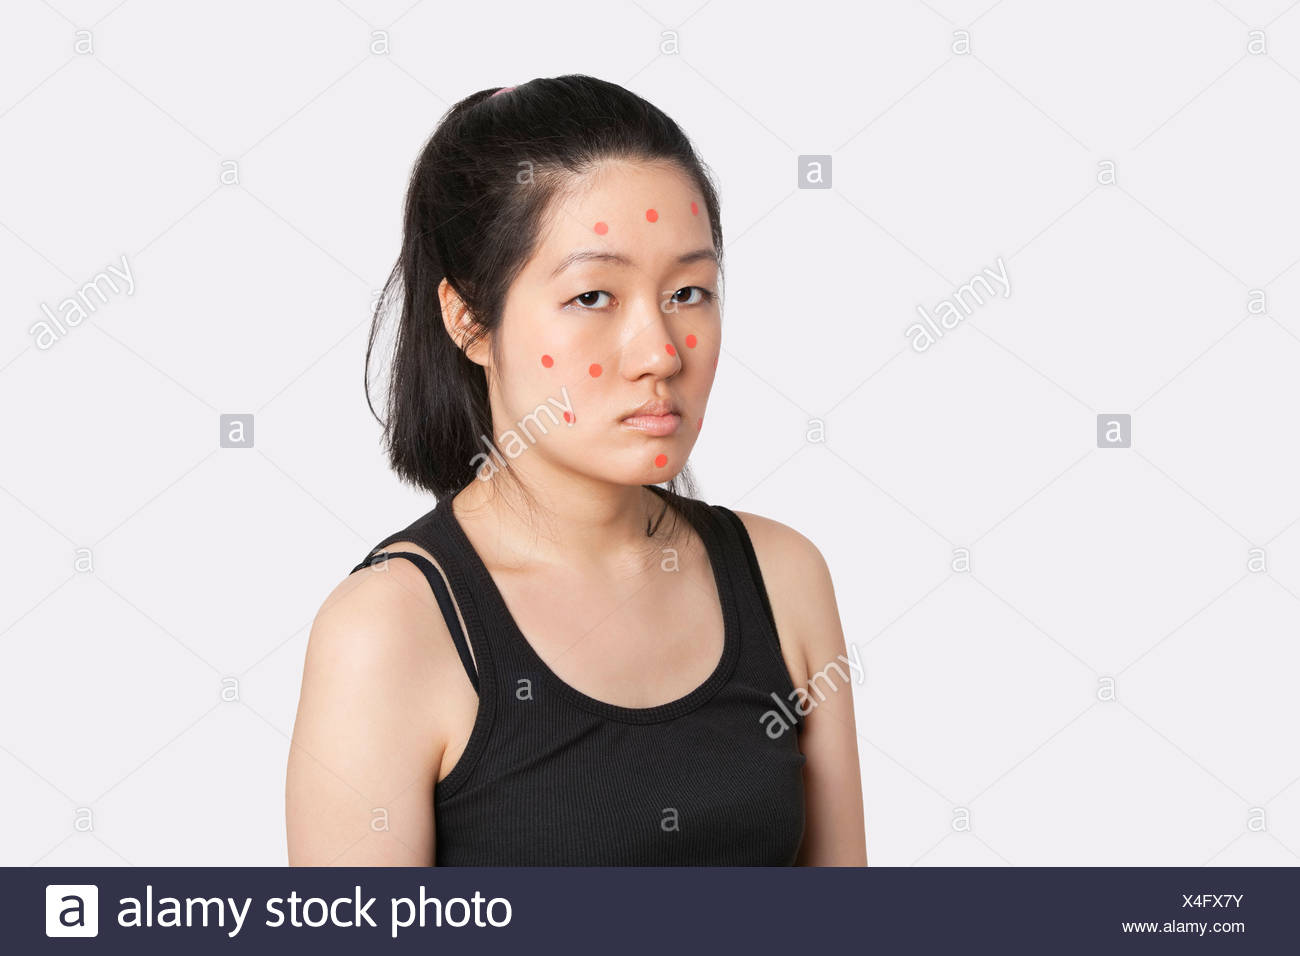 Portrait of an young woman suffering from measles - Stock Image